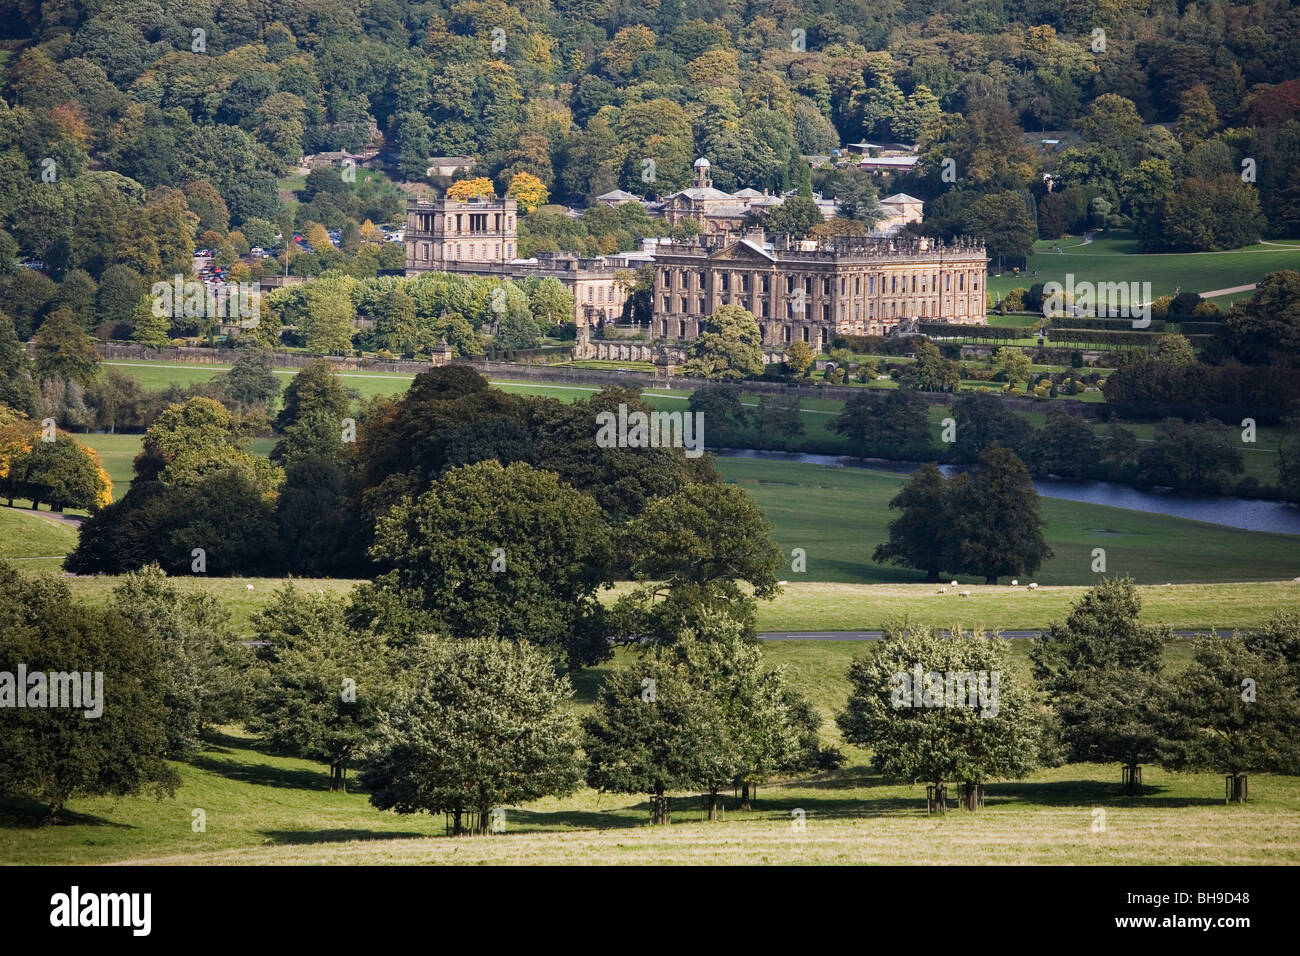 Chatsworth Park and House, Derbyshire, England - Stock Image